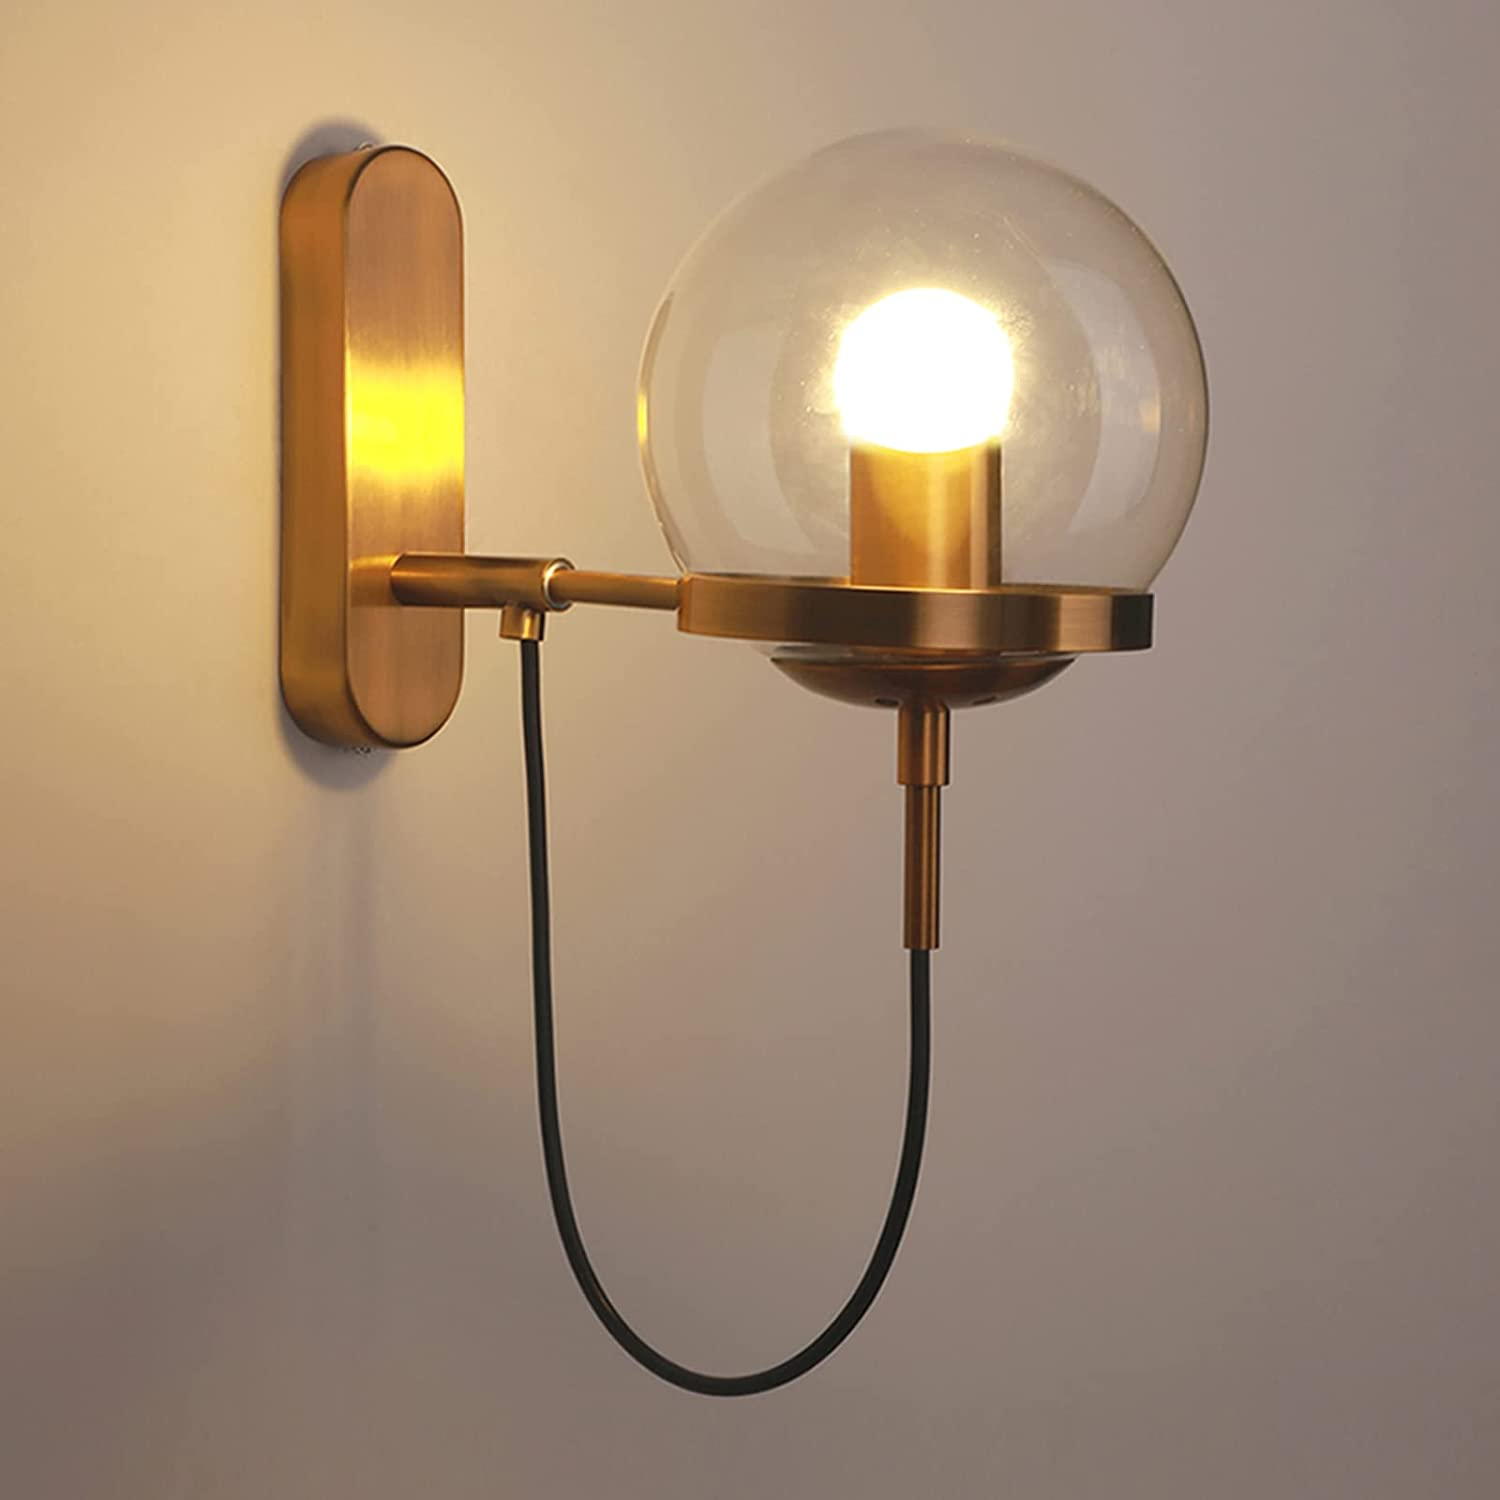 Max 59% OFF DSFFD Modern Industrial OFFicial shop Vintage Wall Lights Light Beds for